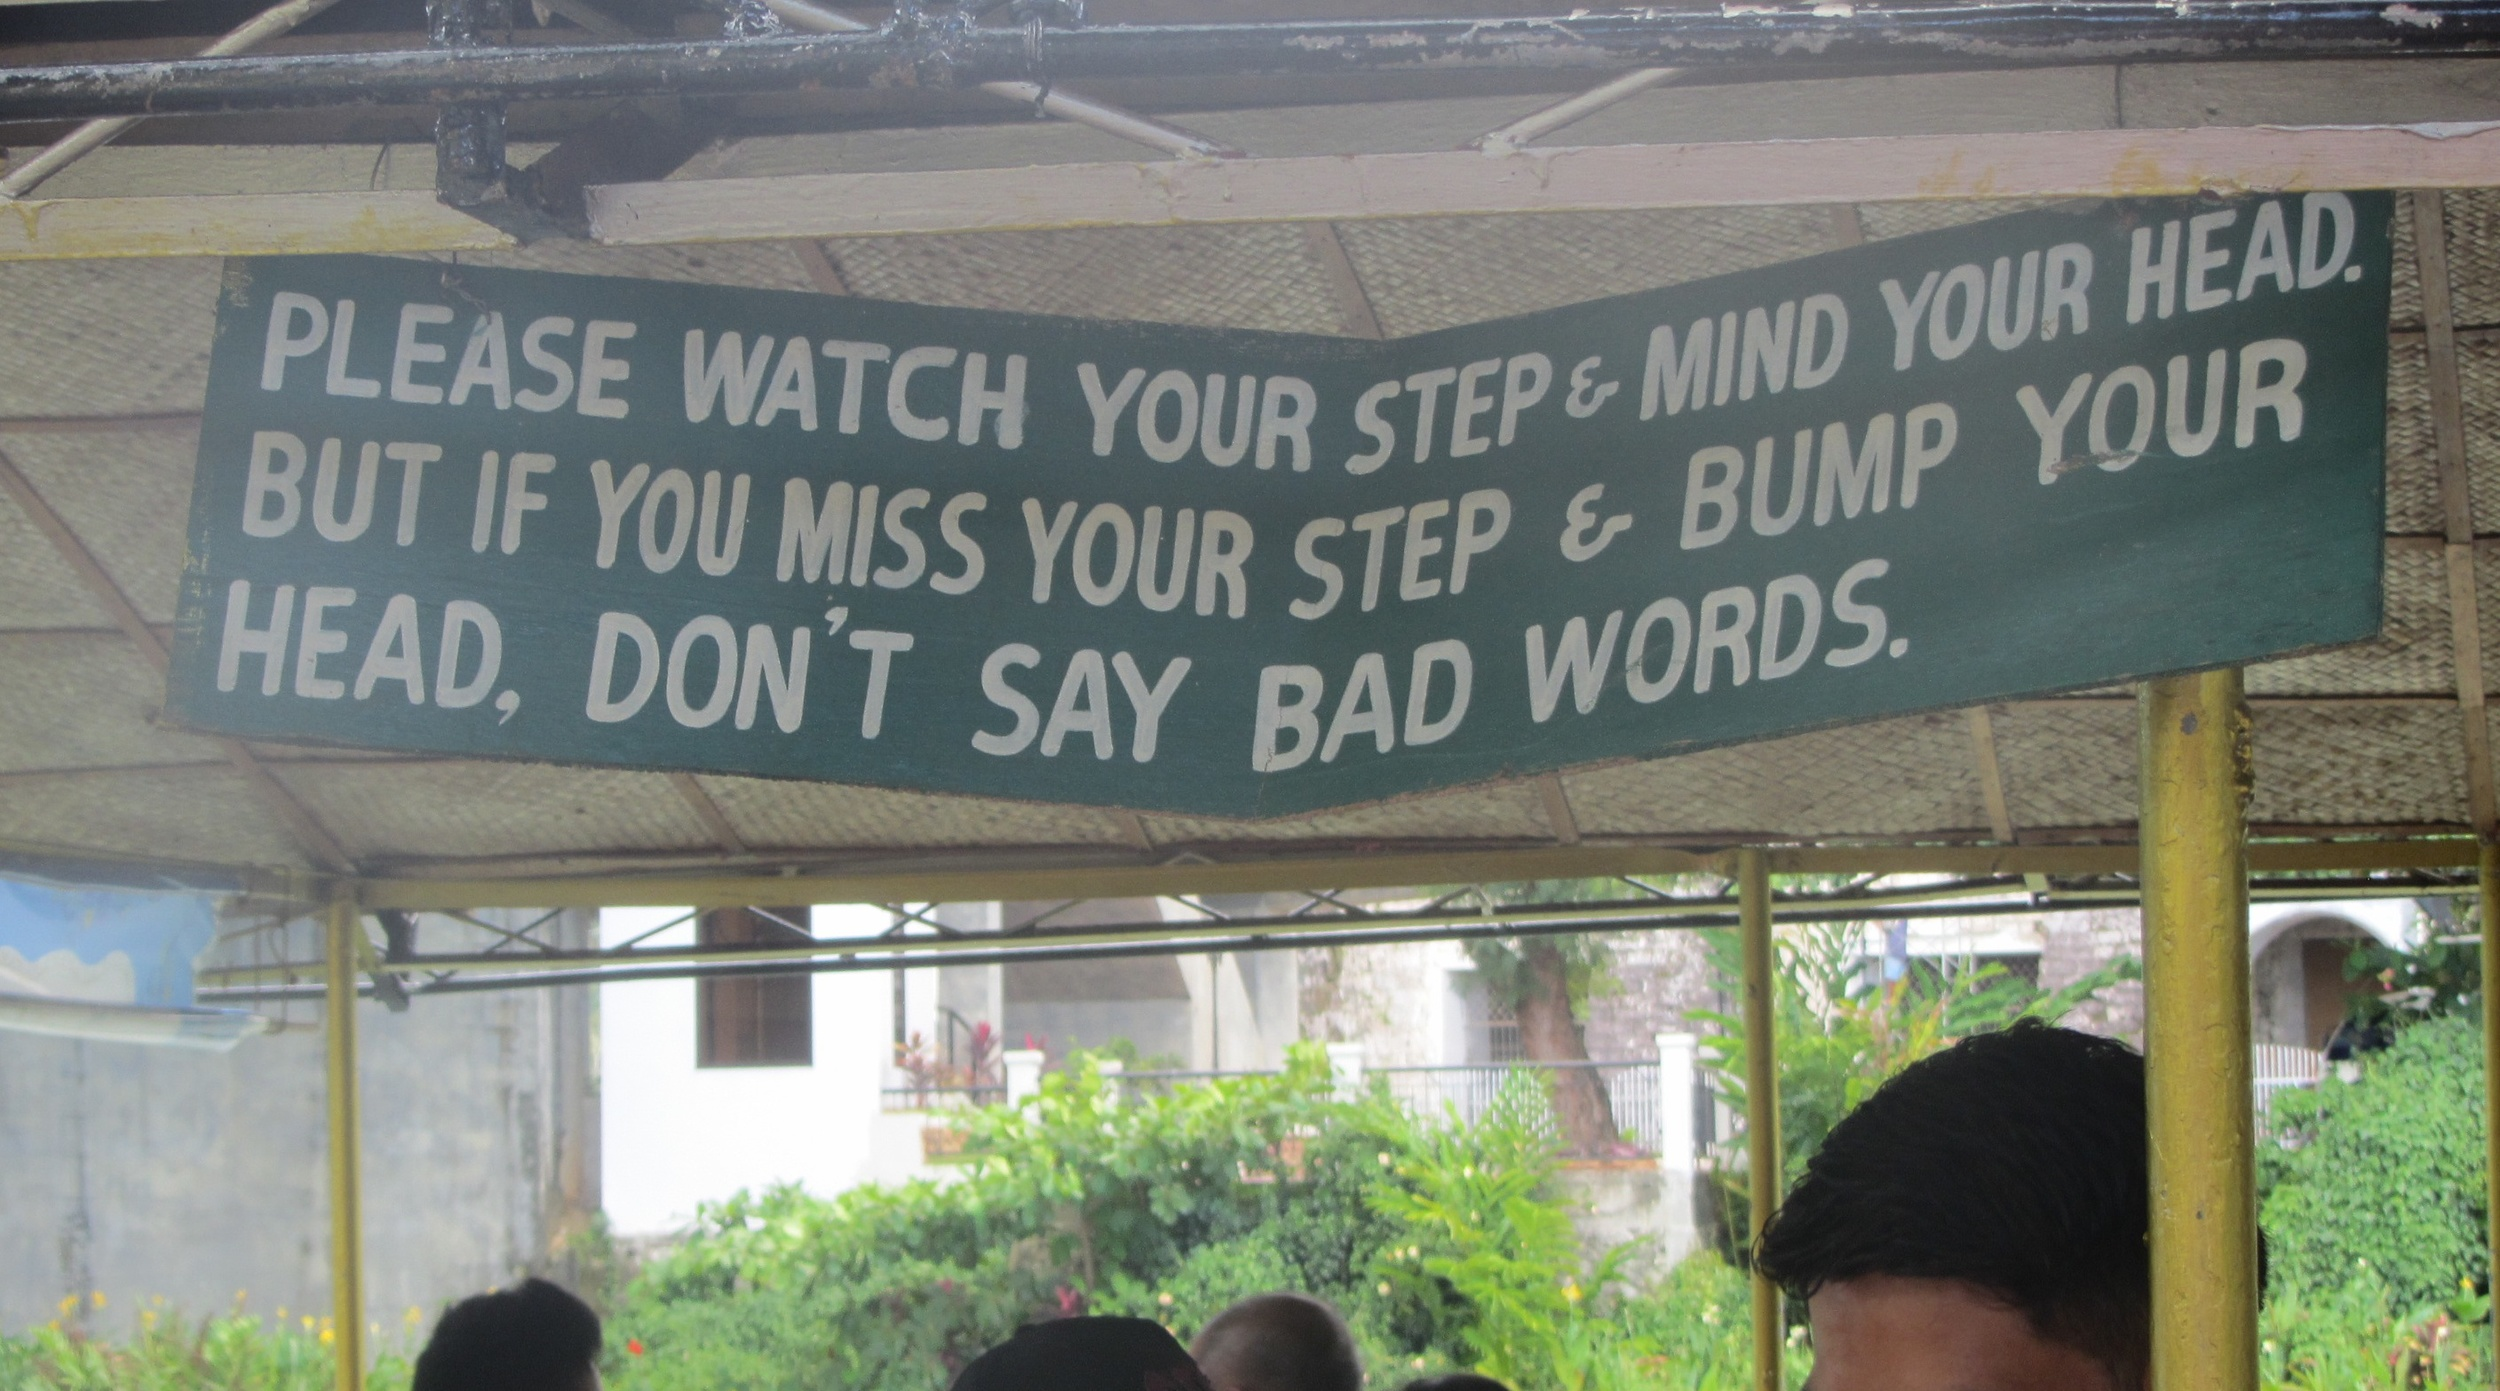 """A reassuring banner on the river boat to Bohol reminded: """"Please Watch Your Step and Mind Your Head. But if you miss your step and bump your head, don't say bad words."""" (Photo by Lisa Suguitan Melnick)"""